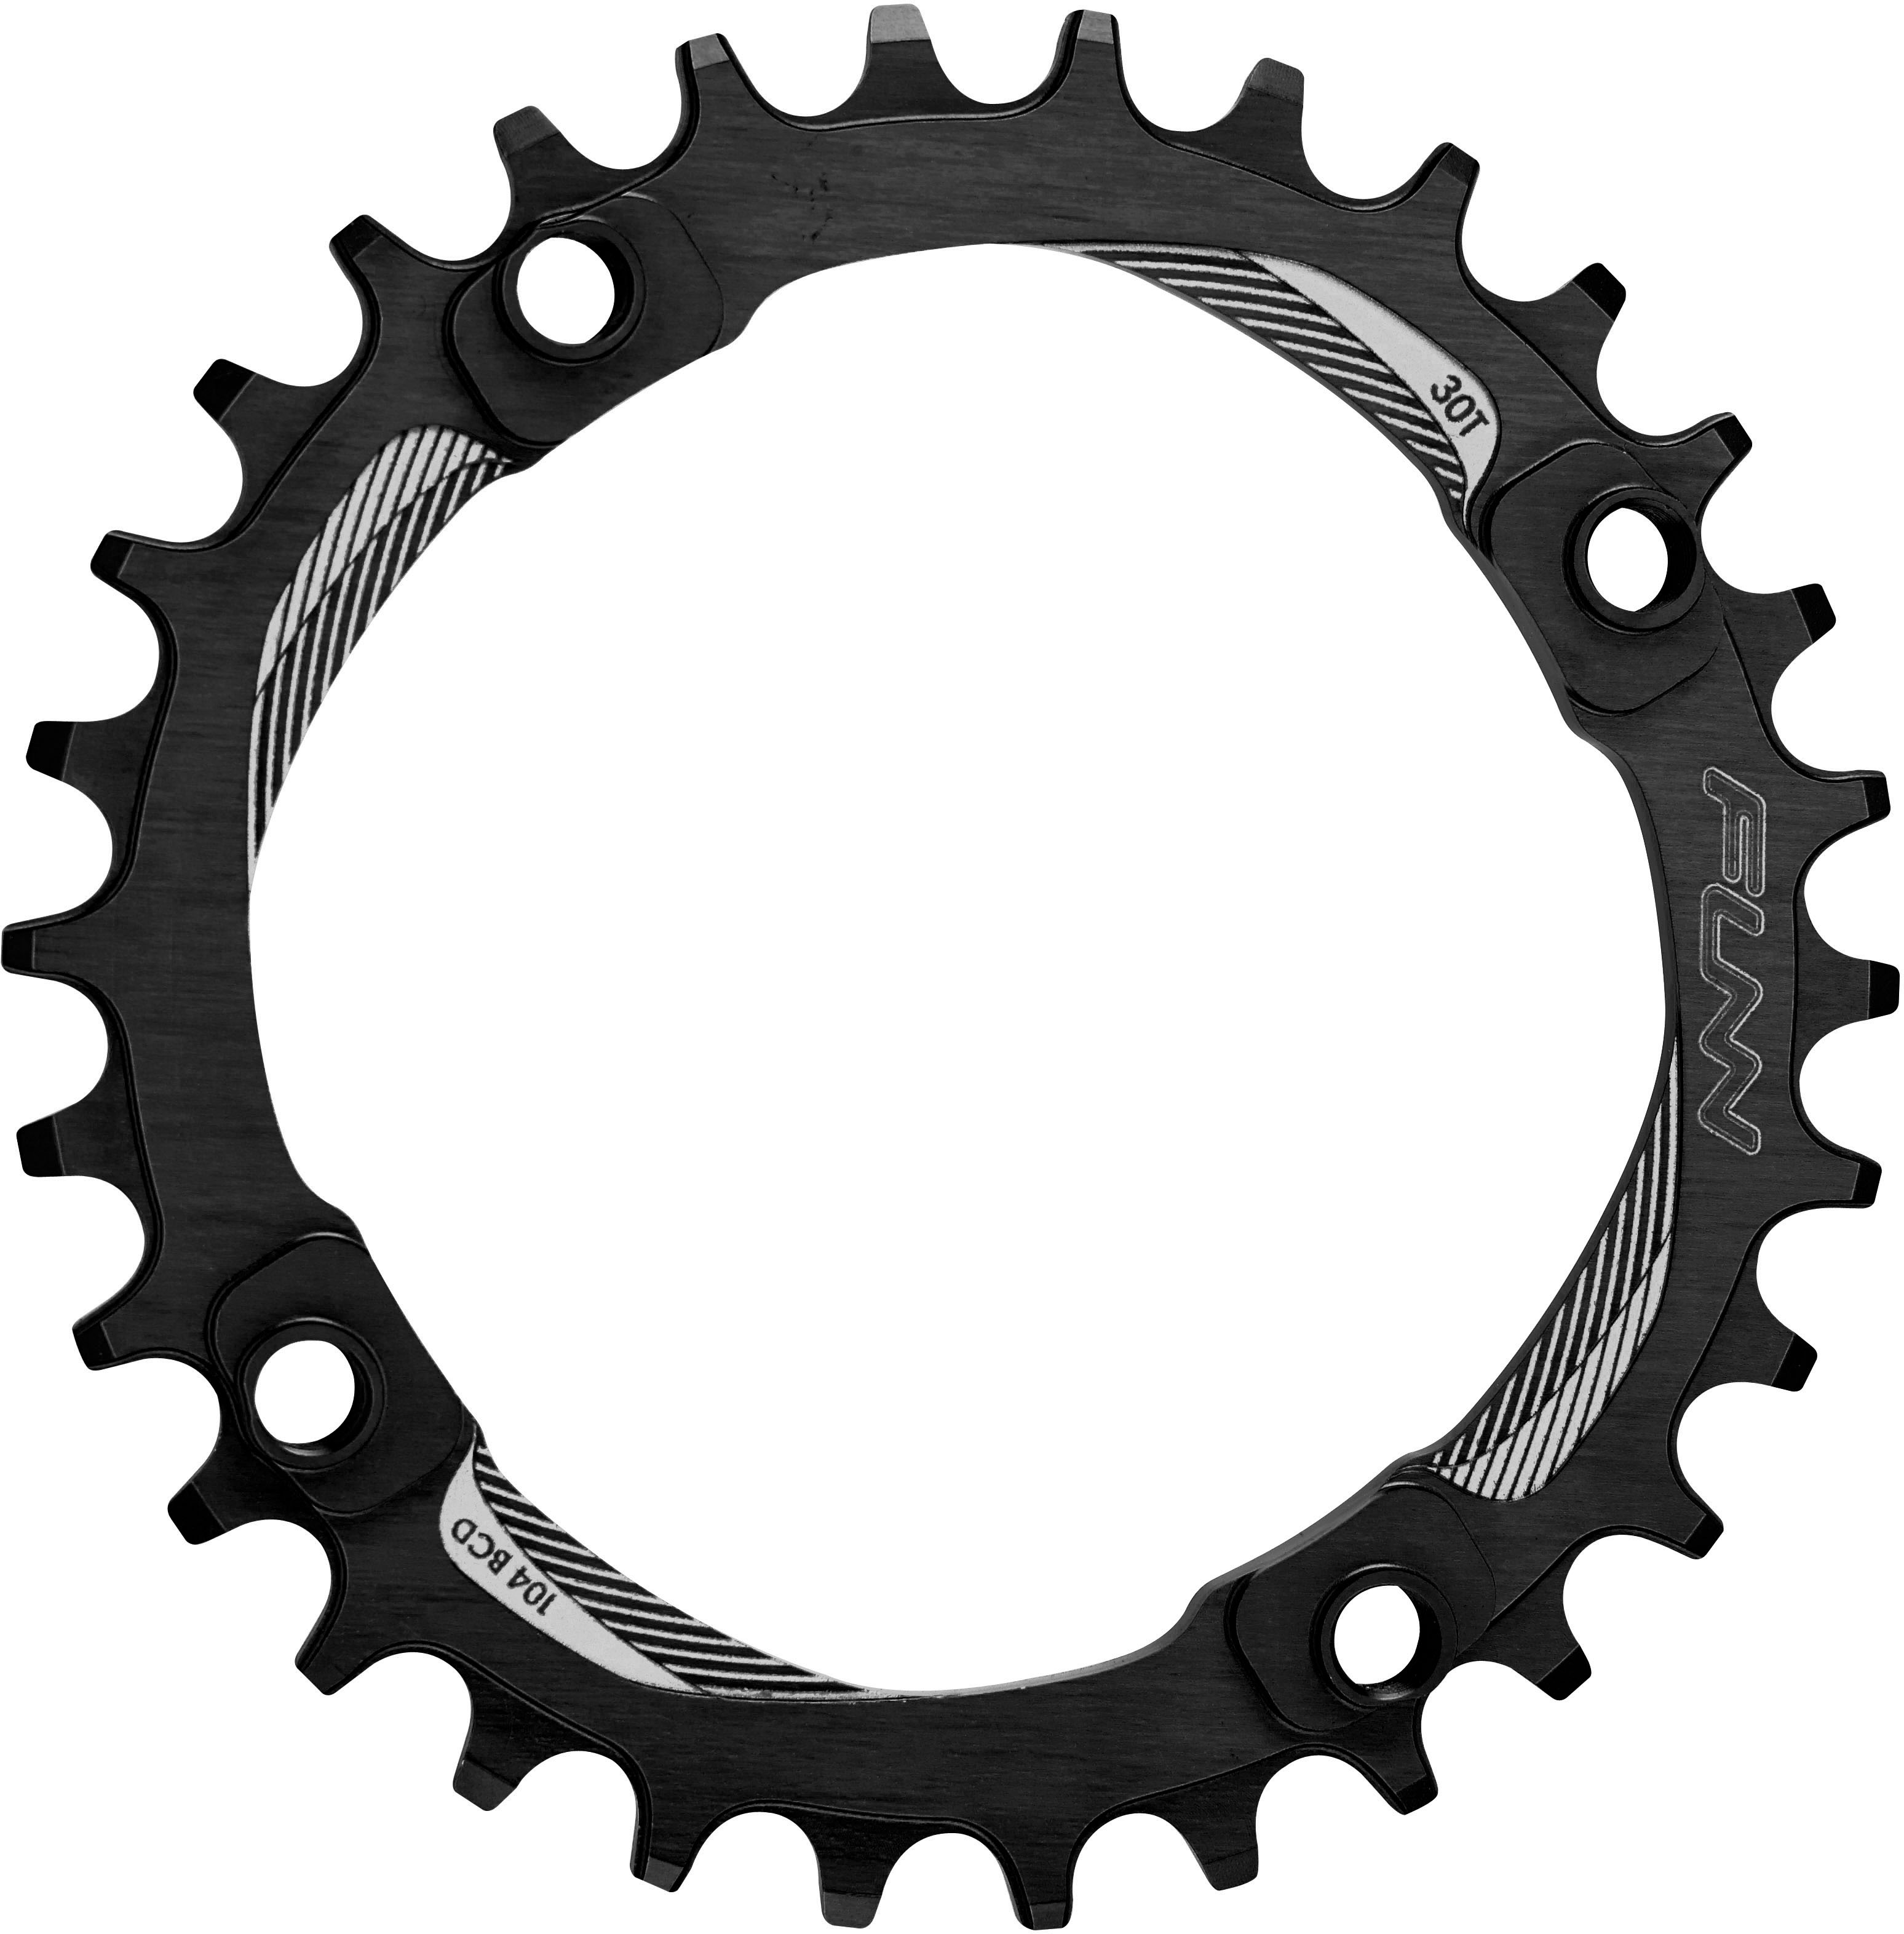 Funn Solo Narrow Wide Chainring | chainrings_component